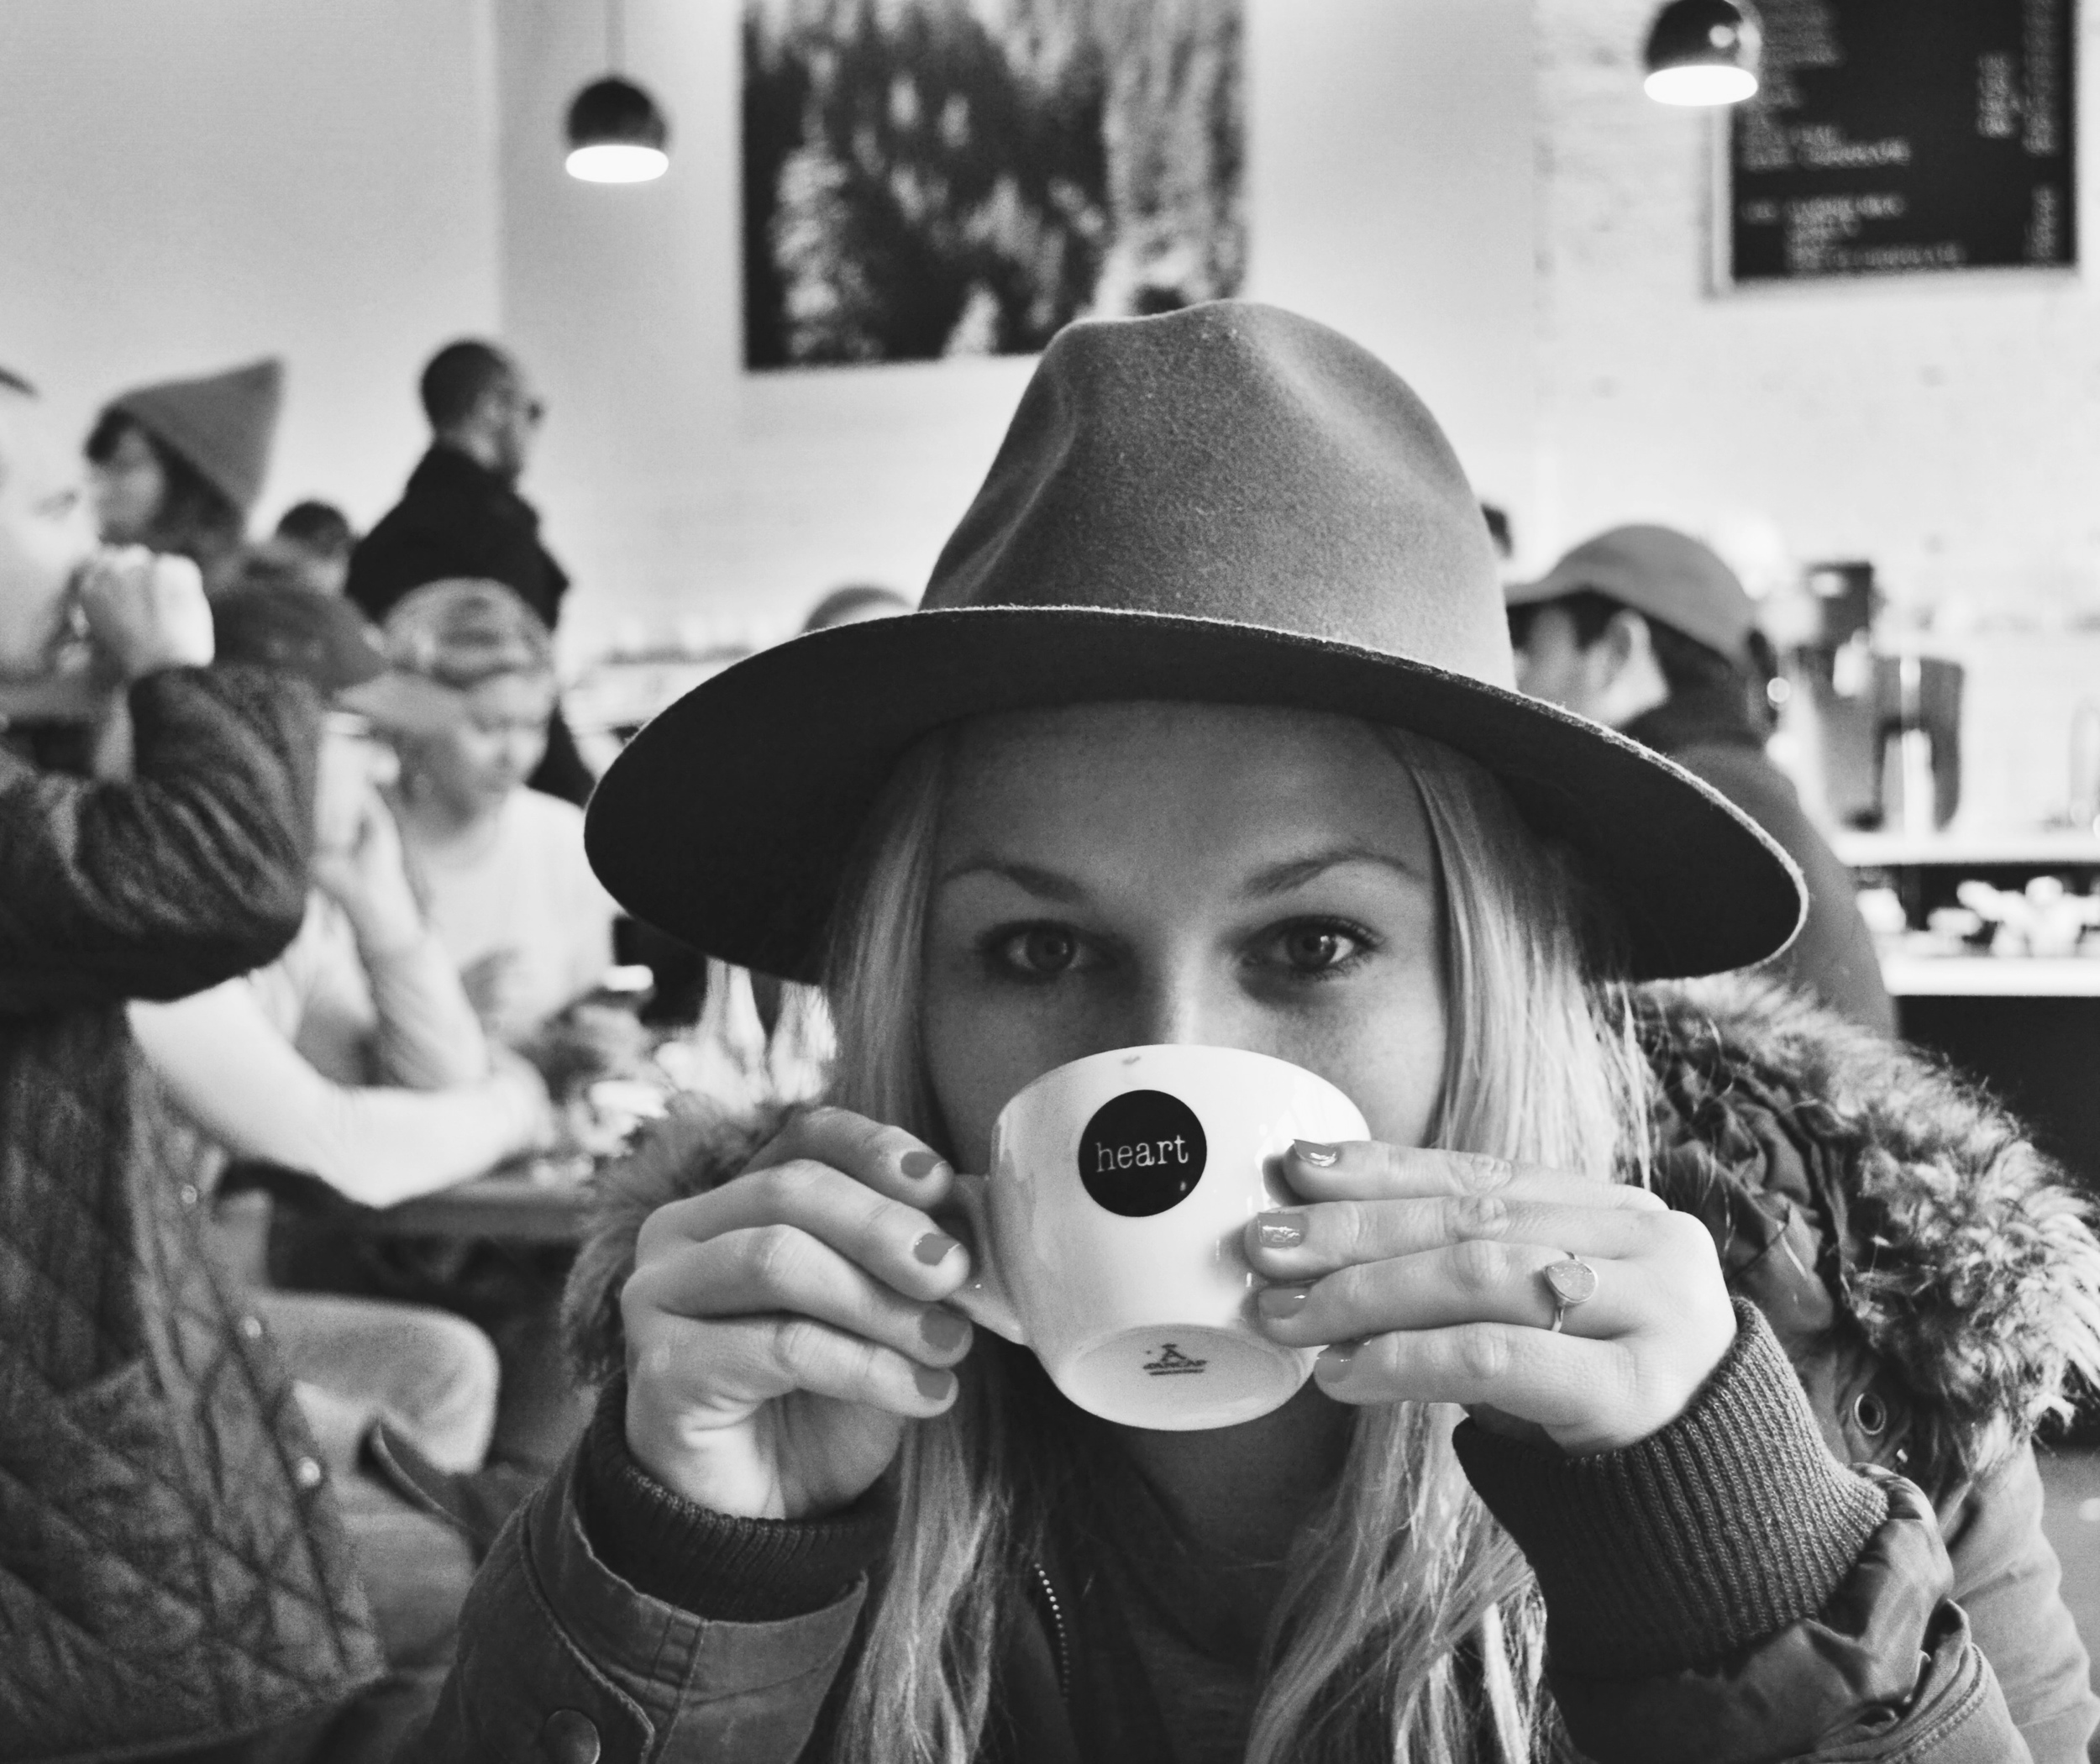 Katie Loughridge, 21, sips her cappuccino at Heart Cafe.